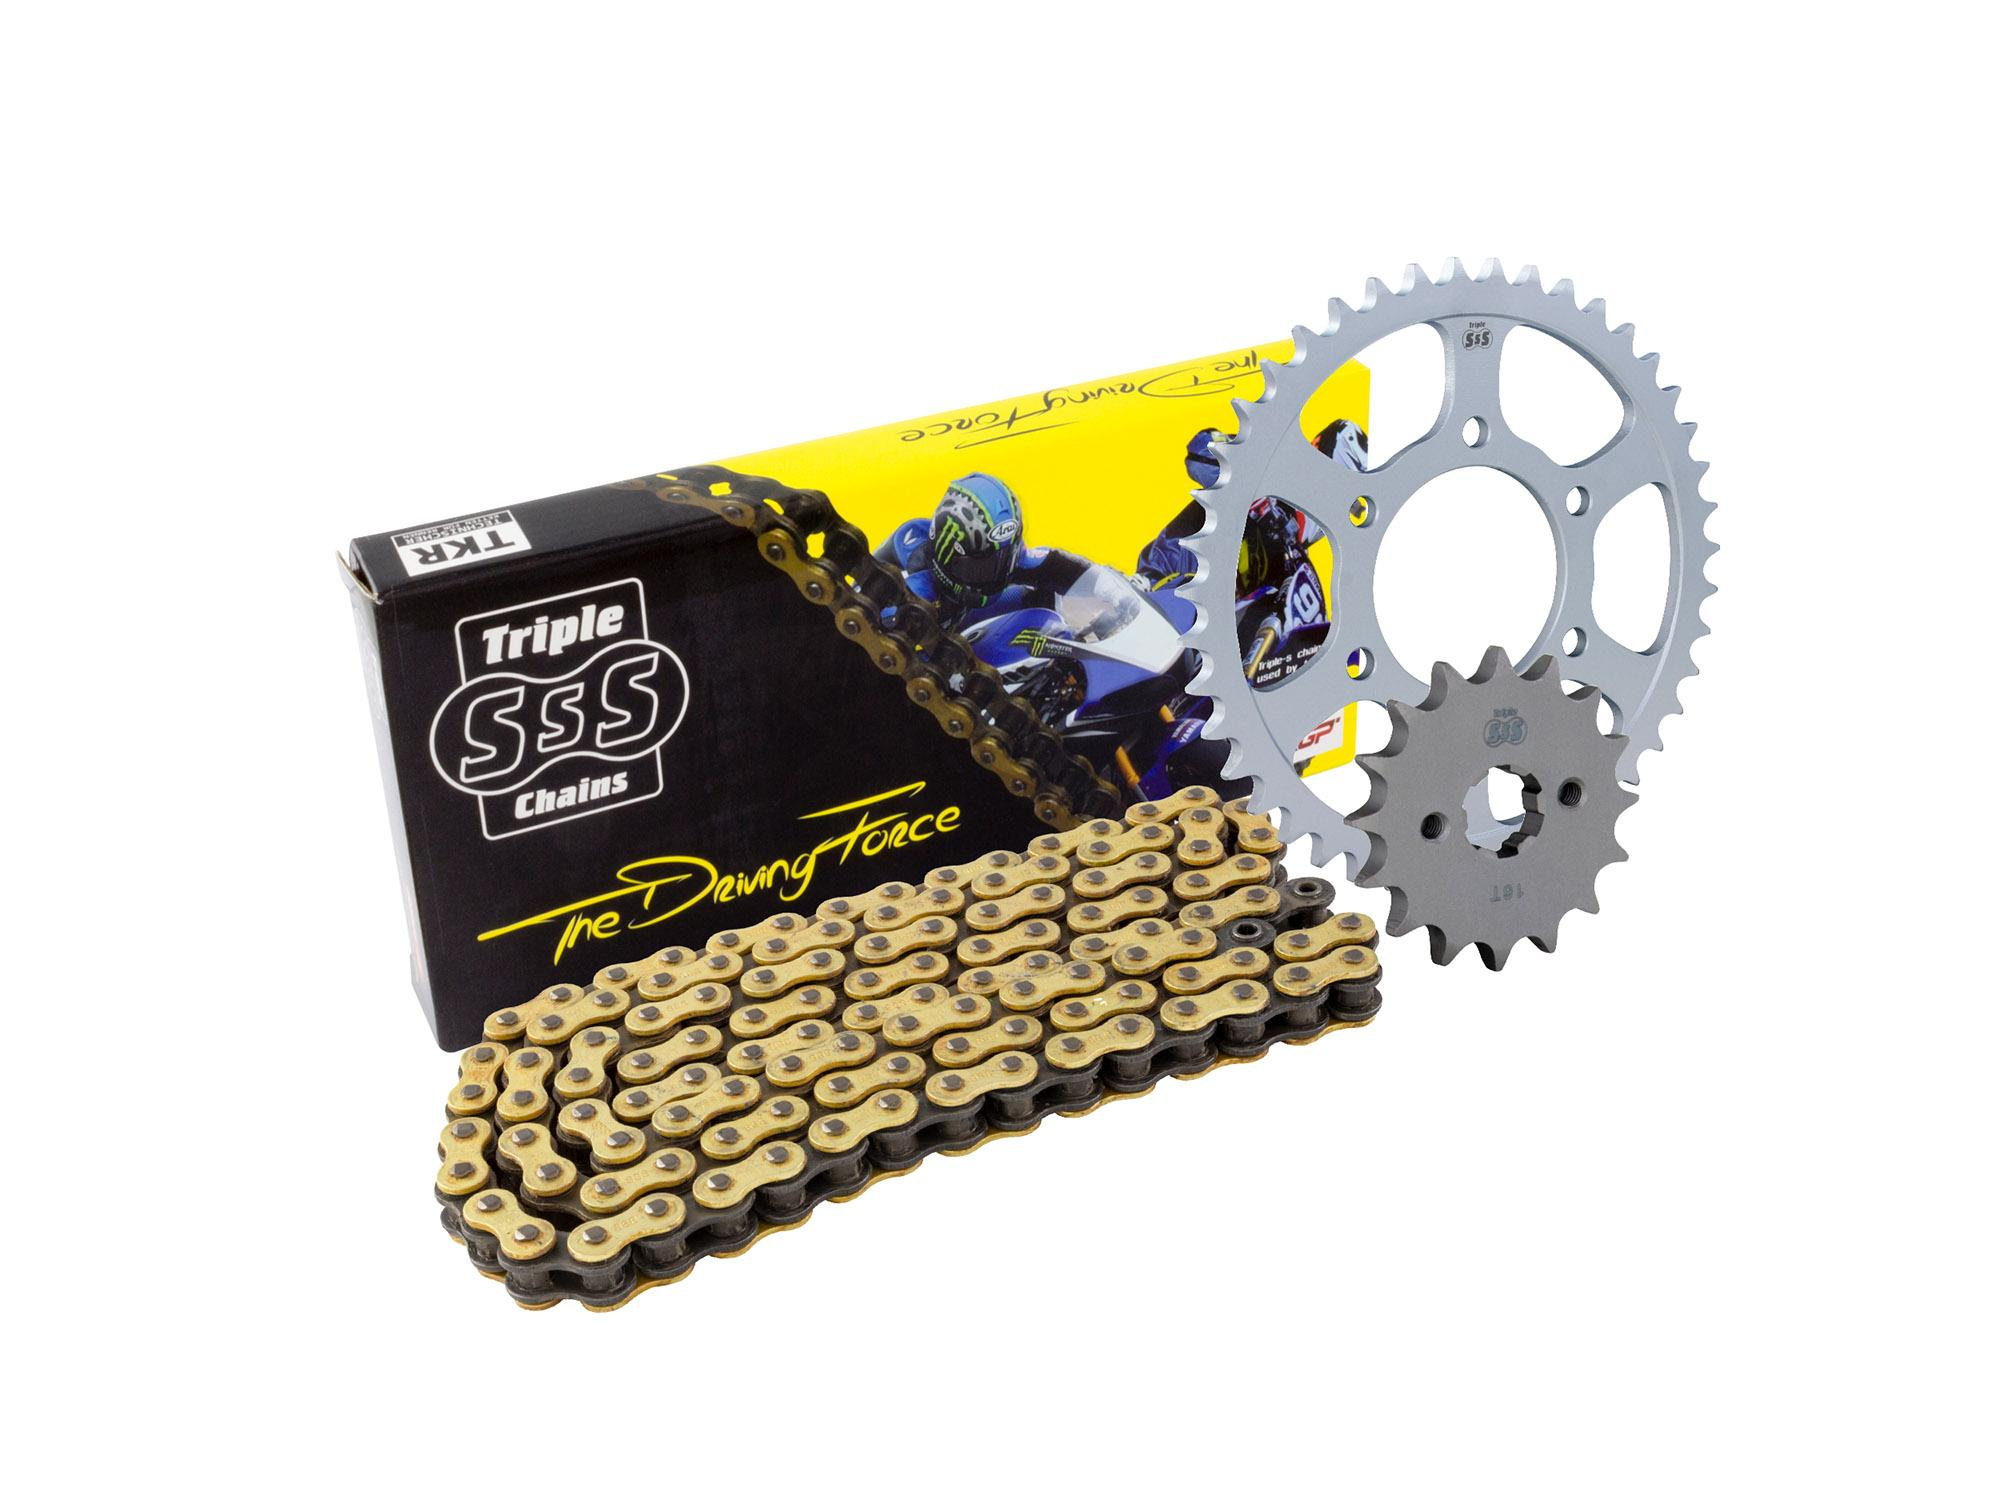 Honda CB1100SF (X-11) 00-03 Chain & Sprocket Kit: 17T Front, 43T Rear, HD O-Ring Gold Chain 530H 110Link